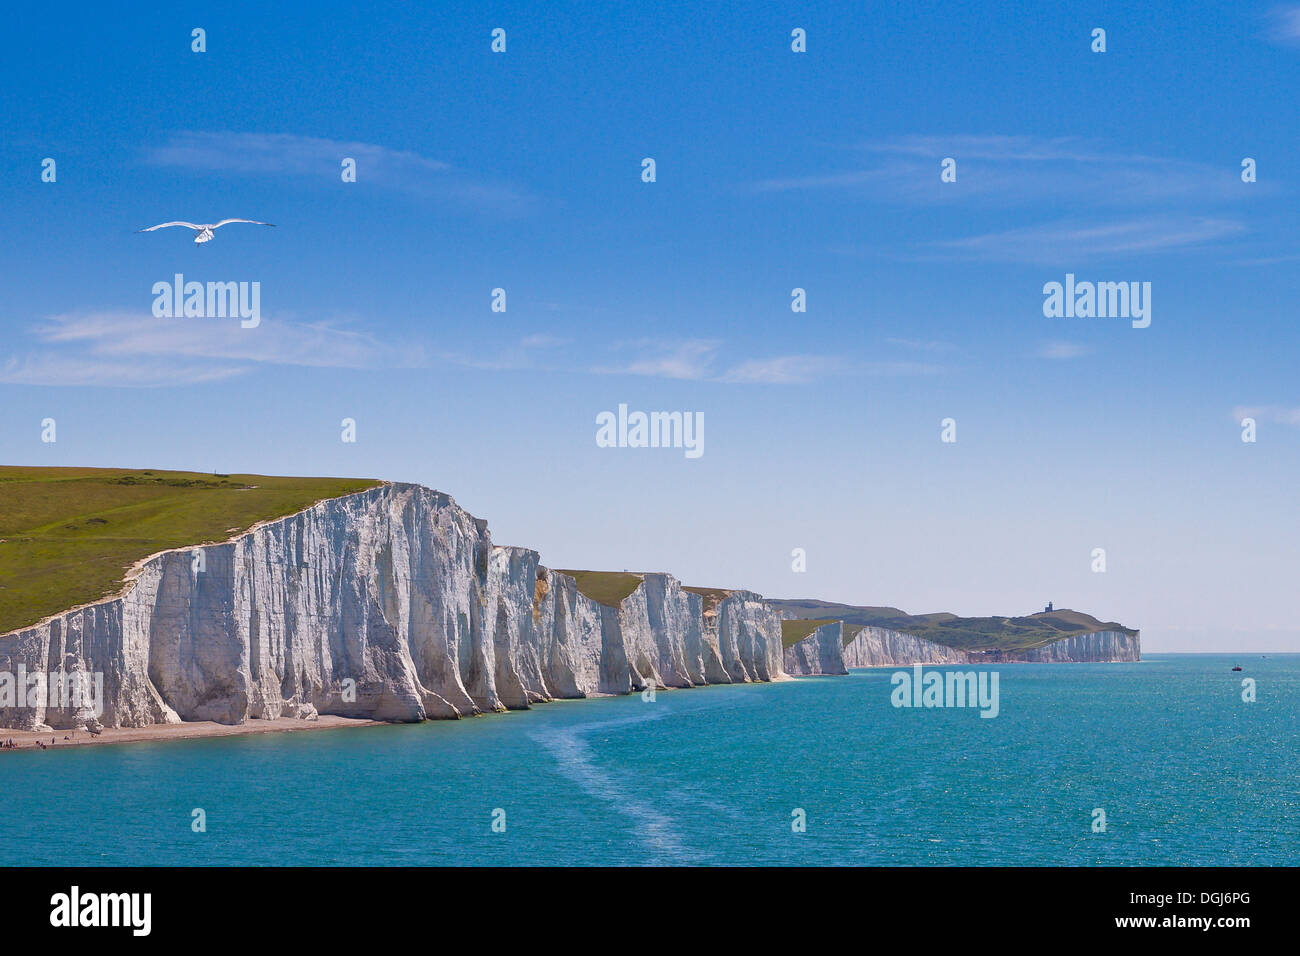 A view toward the chalk cliffs known as The Seven Sisters. - Stock Image